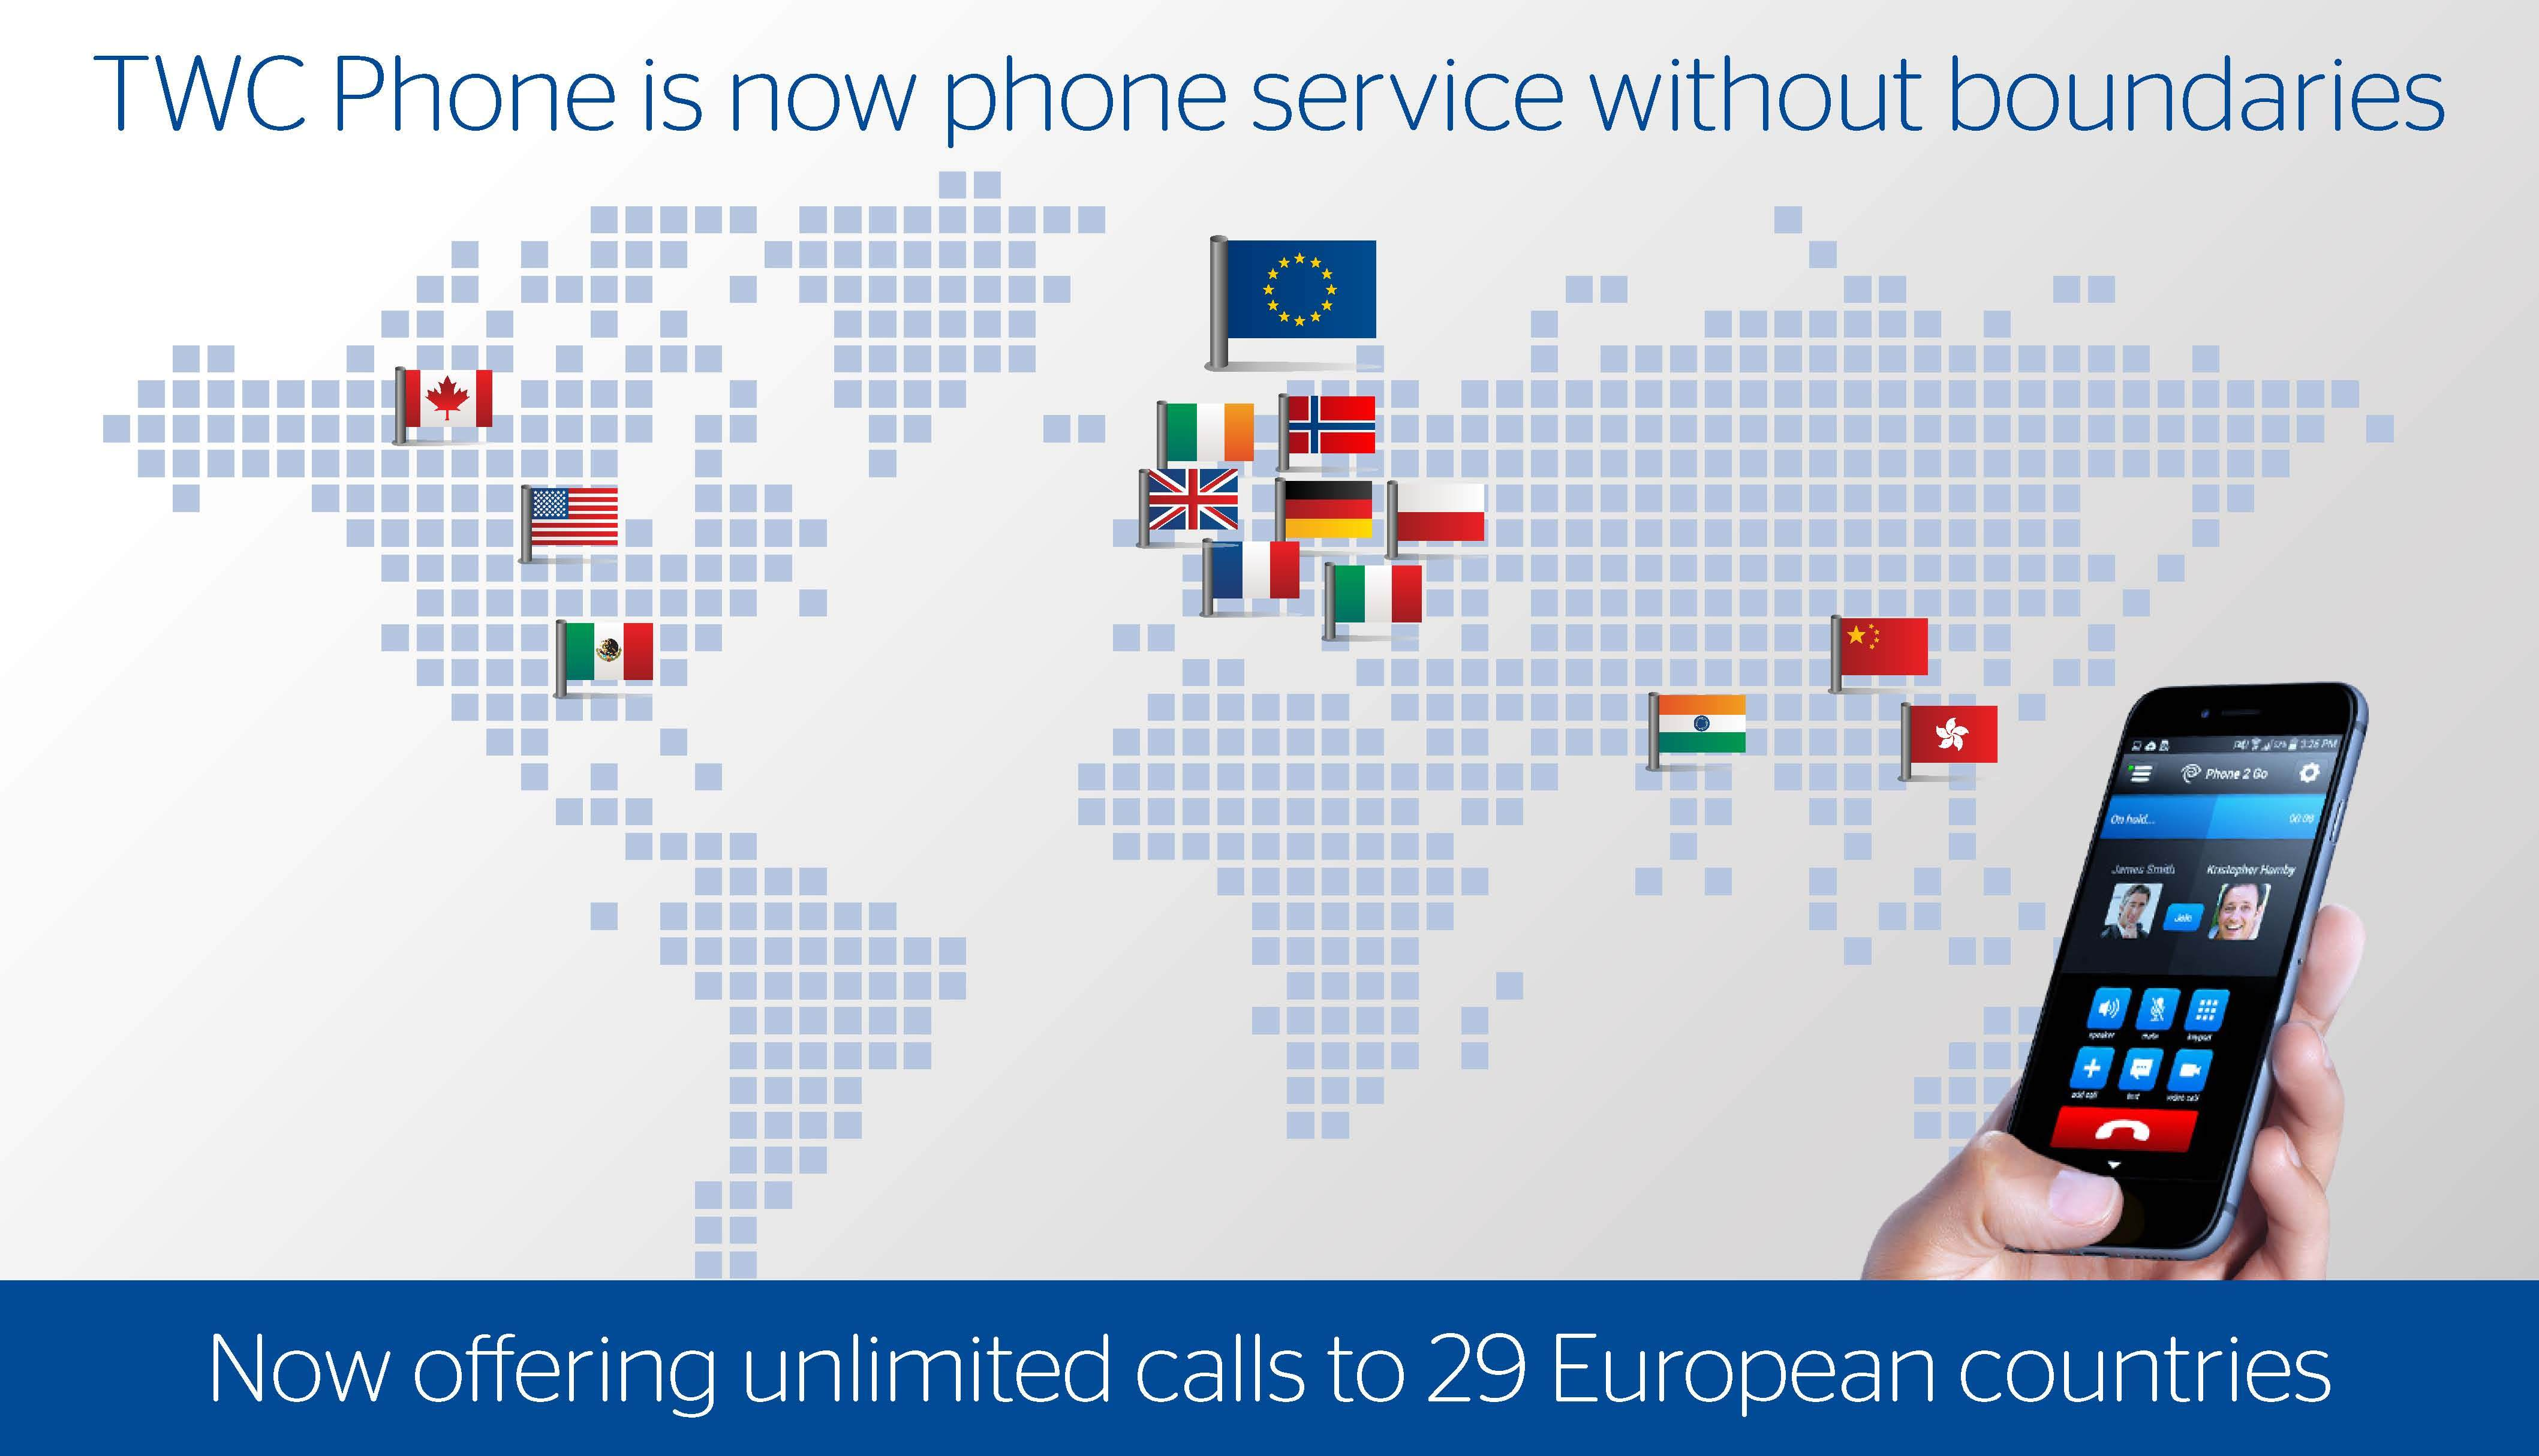 Business Phone Line Wiring Trusted Diagram Home Reciever Diy Enthusiasts Diagrams Unlimited Calling To 29 European Countries Now Included In Time Rh Businesswire Com Telephone Basics For Dsl